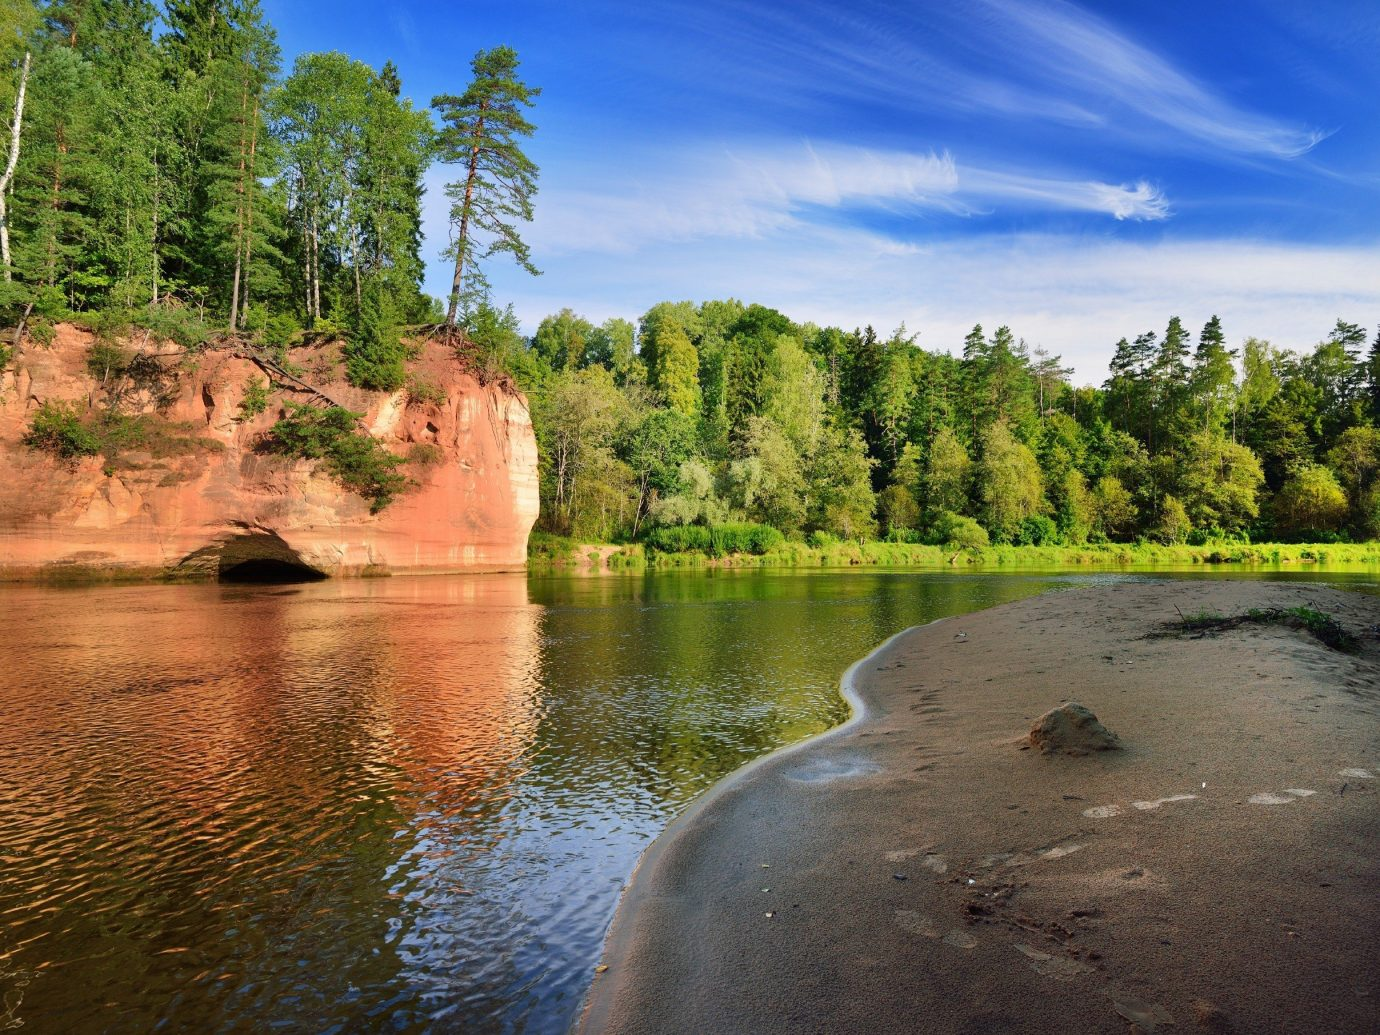 Trip Ideas tree outdoor sky water Nature River reflection wilderness body of water Lake loch reservoir landscape pond waterway stream surrounded